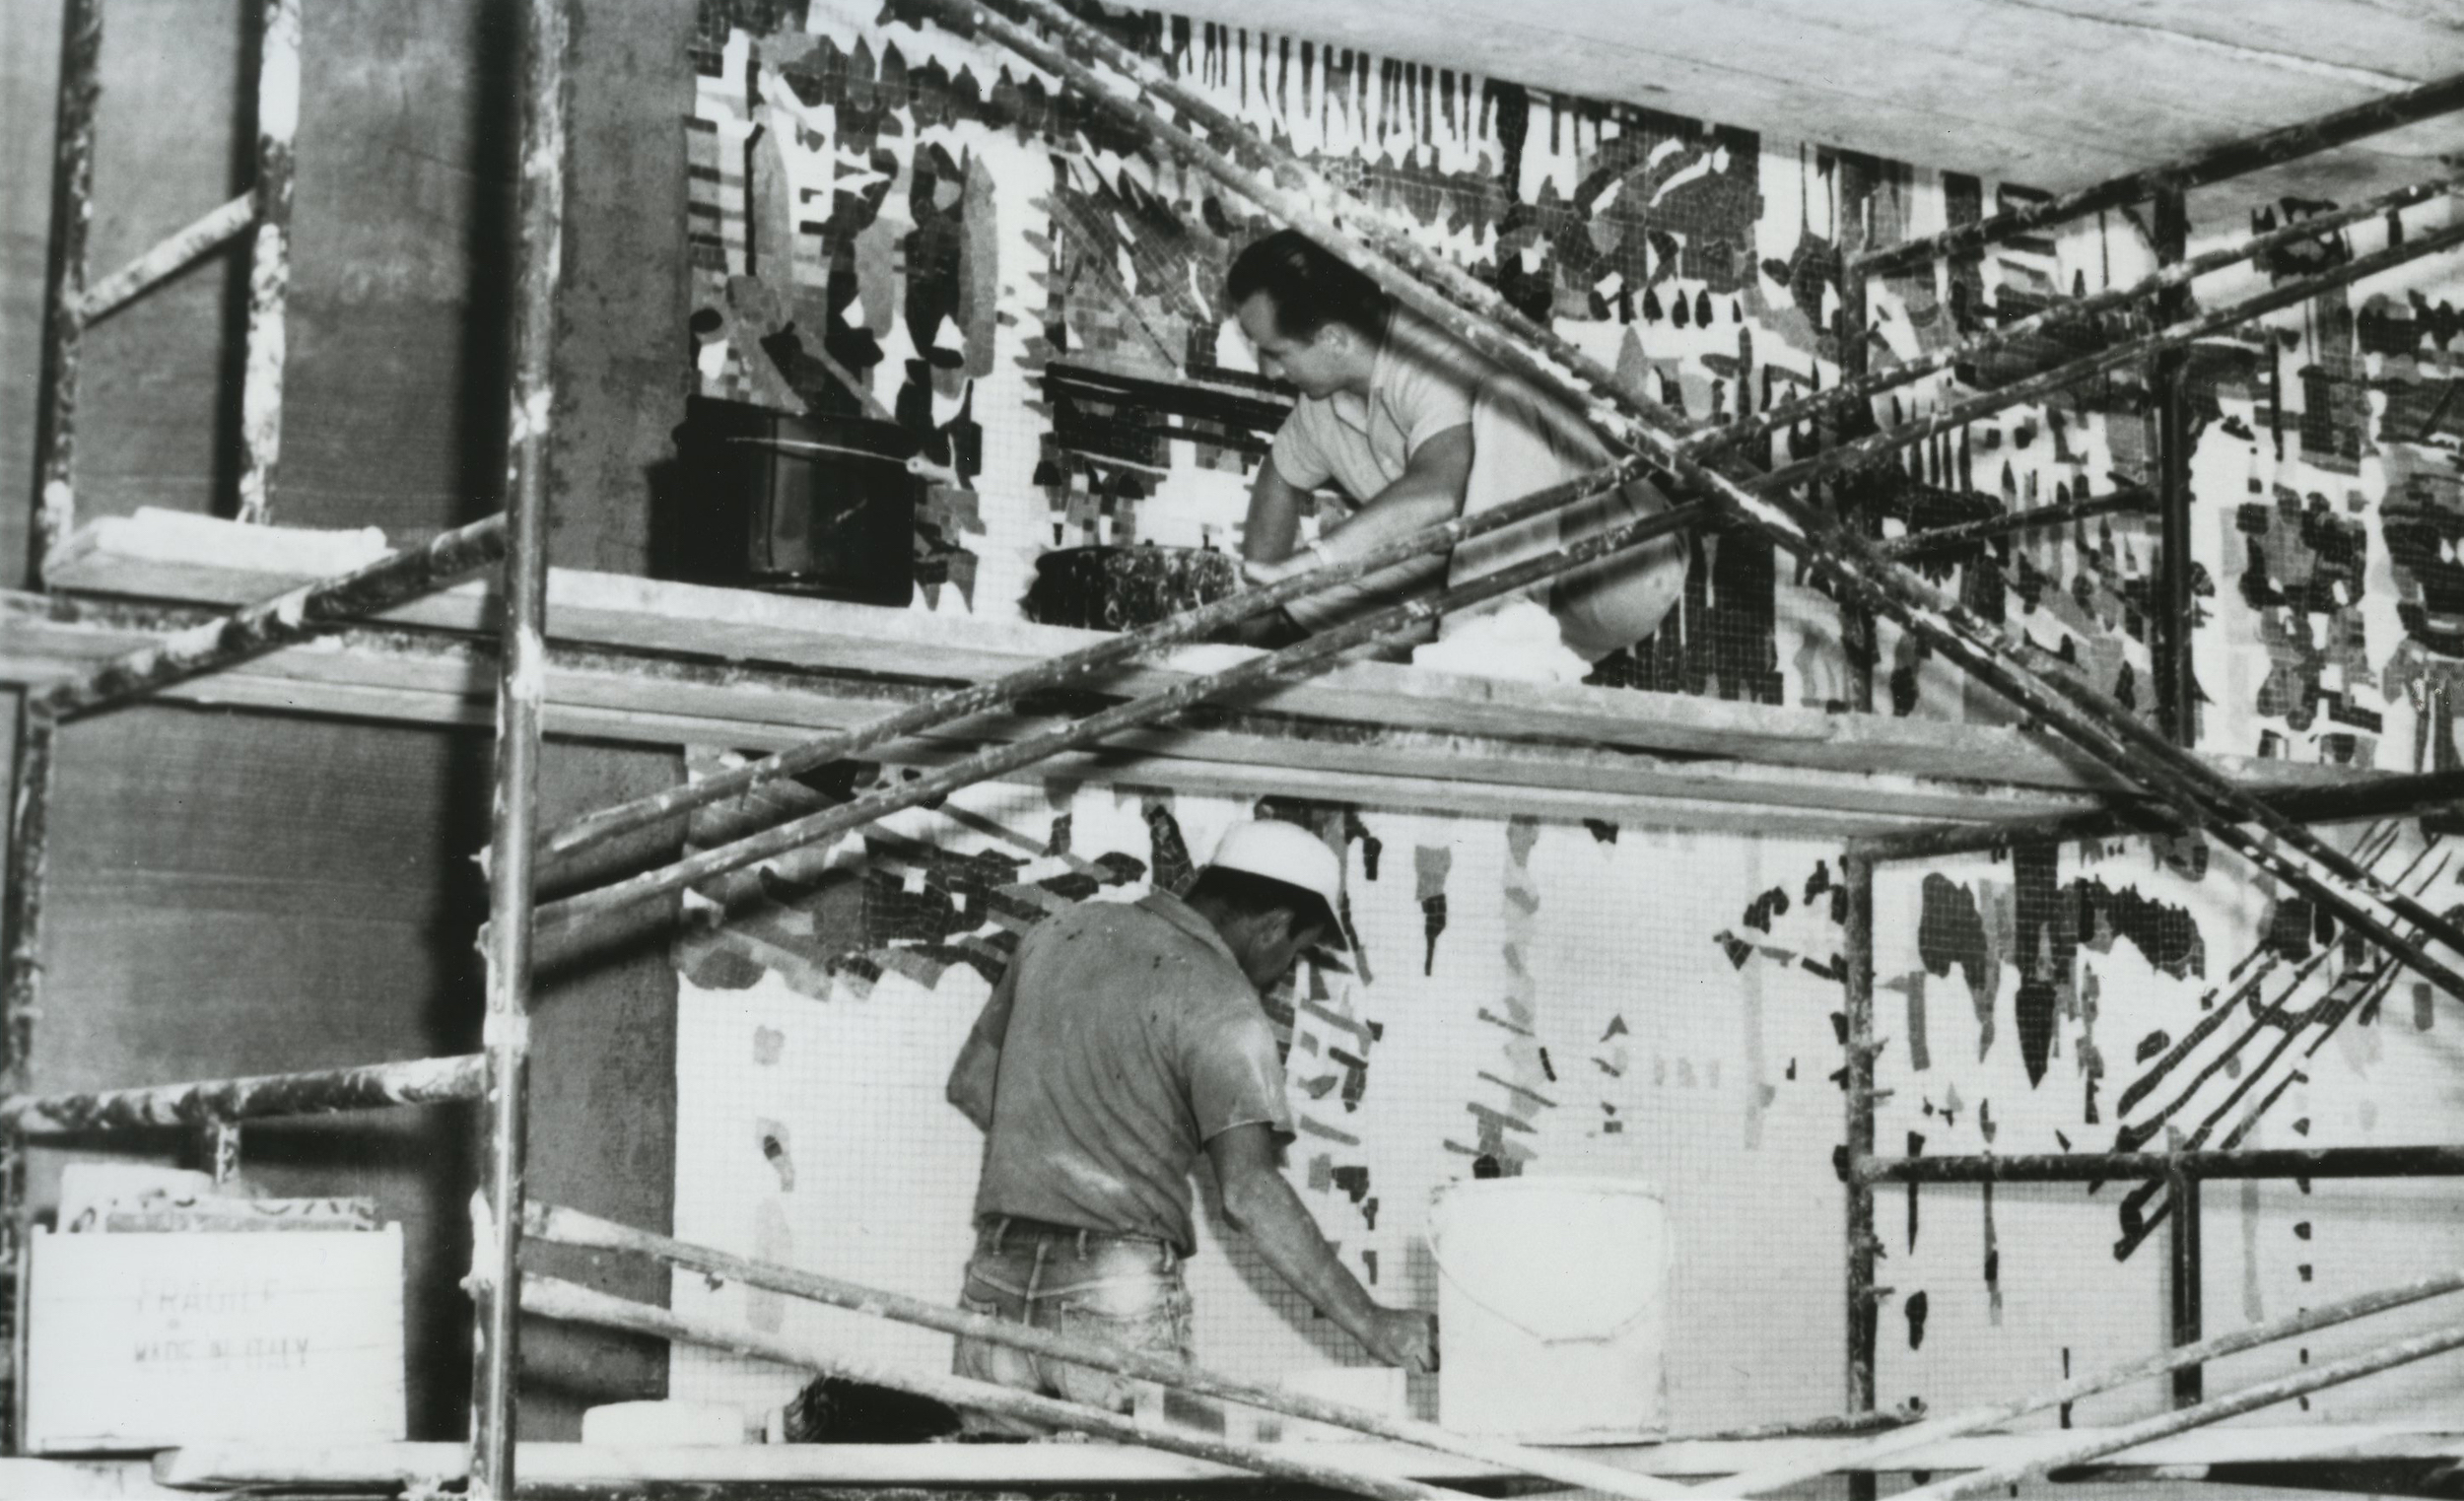 Vintage photos of work underway on a large mural